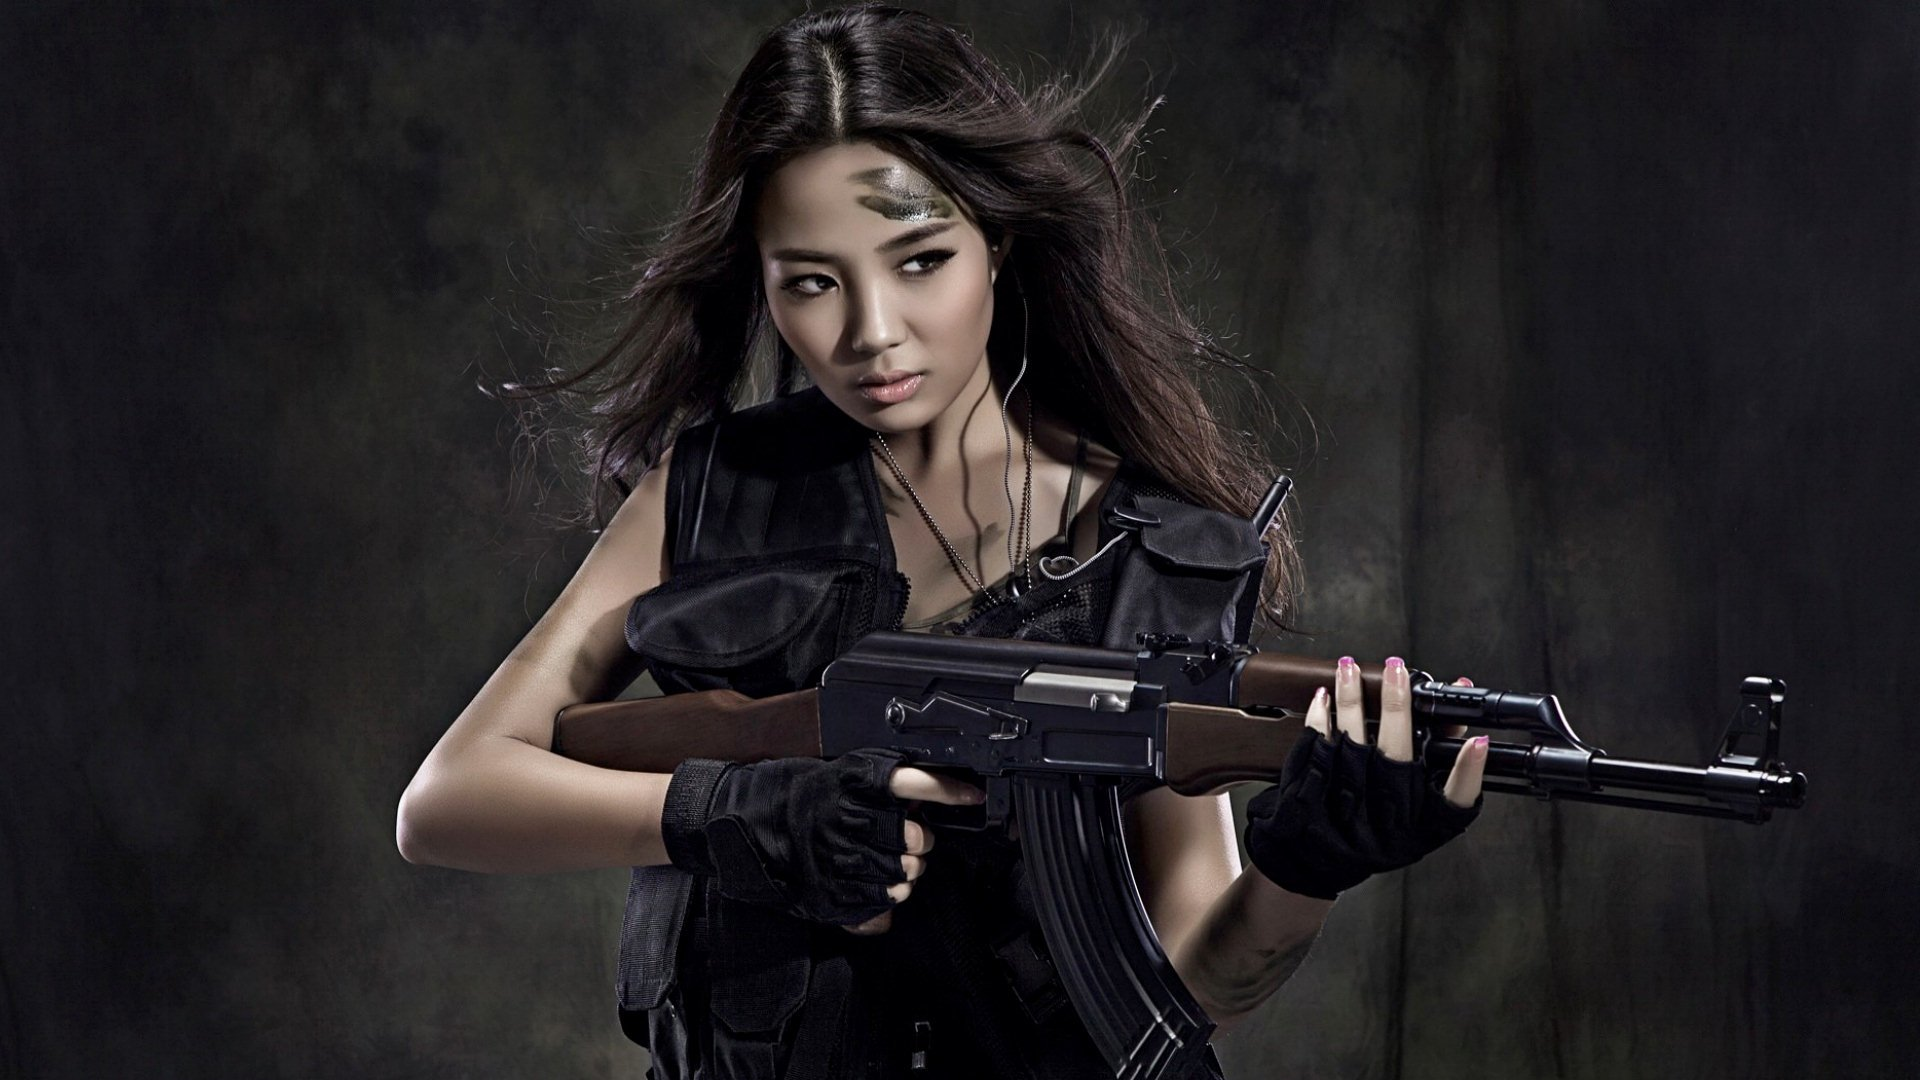 Women - Girls & Guns  Woman Pretty Cute AK-47 Asian Wallpaper